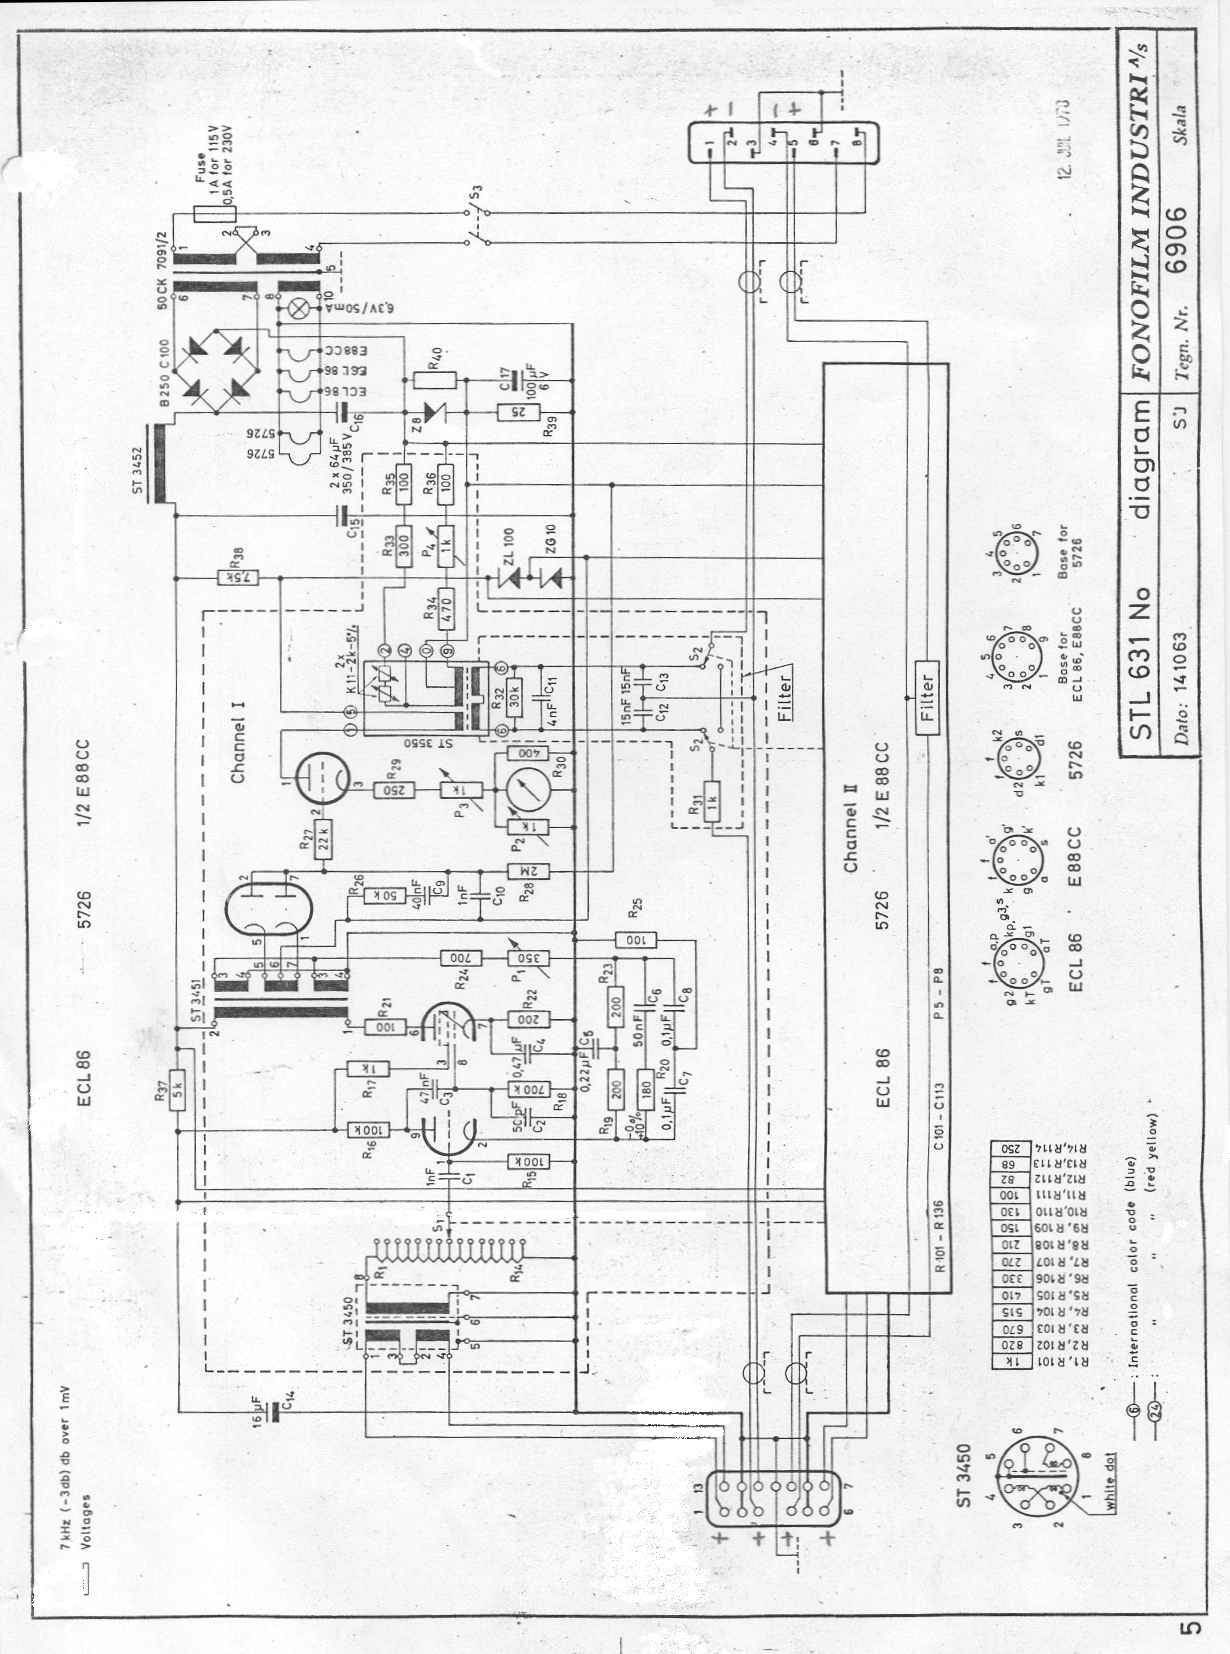 Https Post Audio Compressor Limiter Simple Refrigerator Door Alarm Circuit Eleccircuitcom Stl631 01 Schematic Stereovalvetrebblelimiter